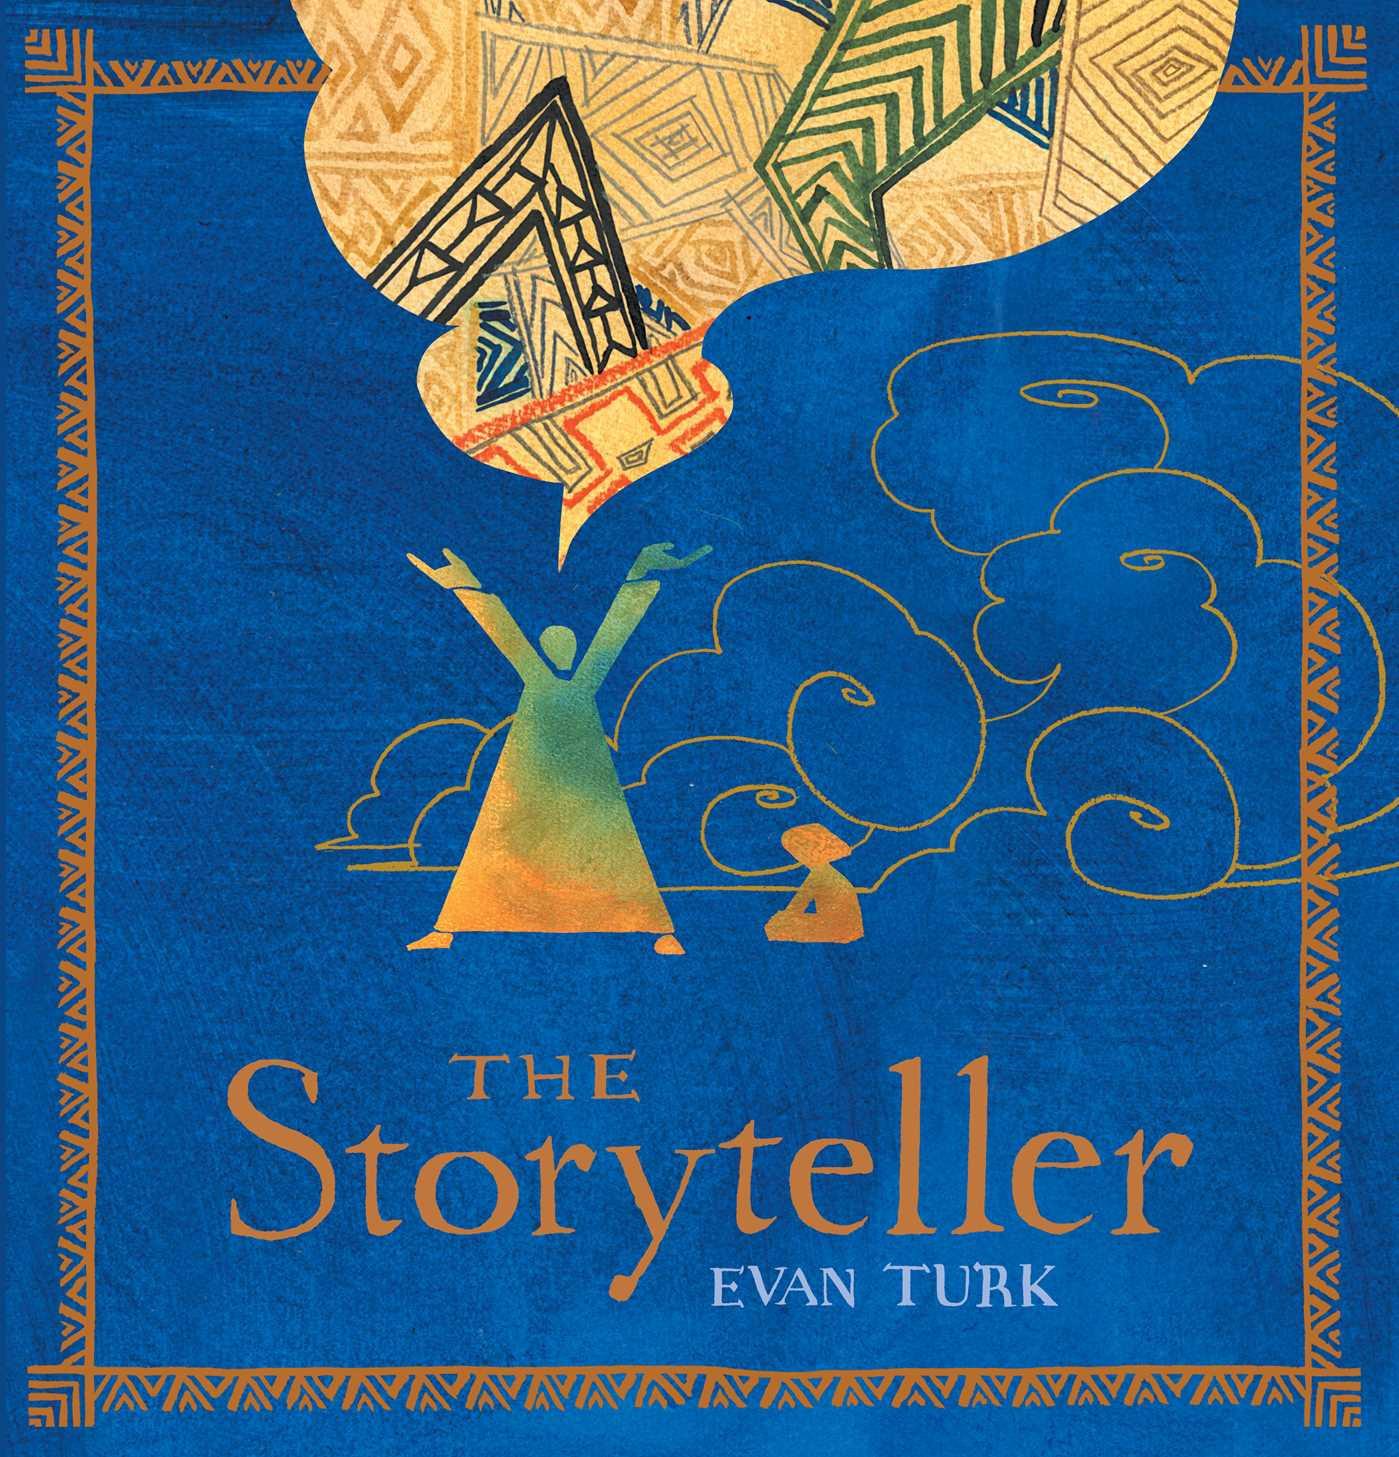 The storyteller 9781481435185 hr